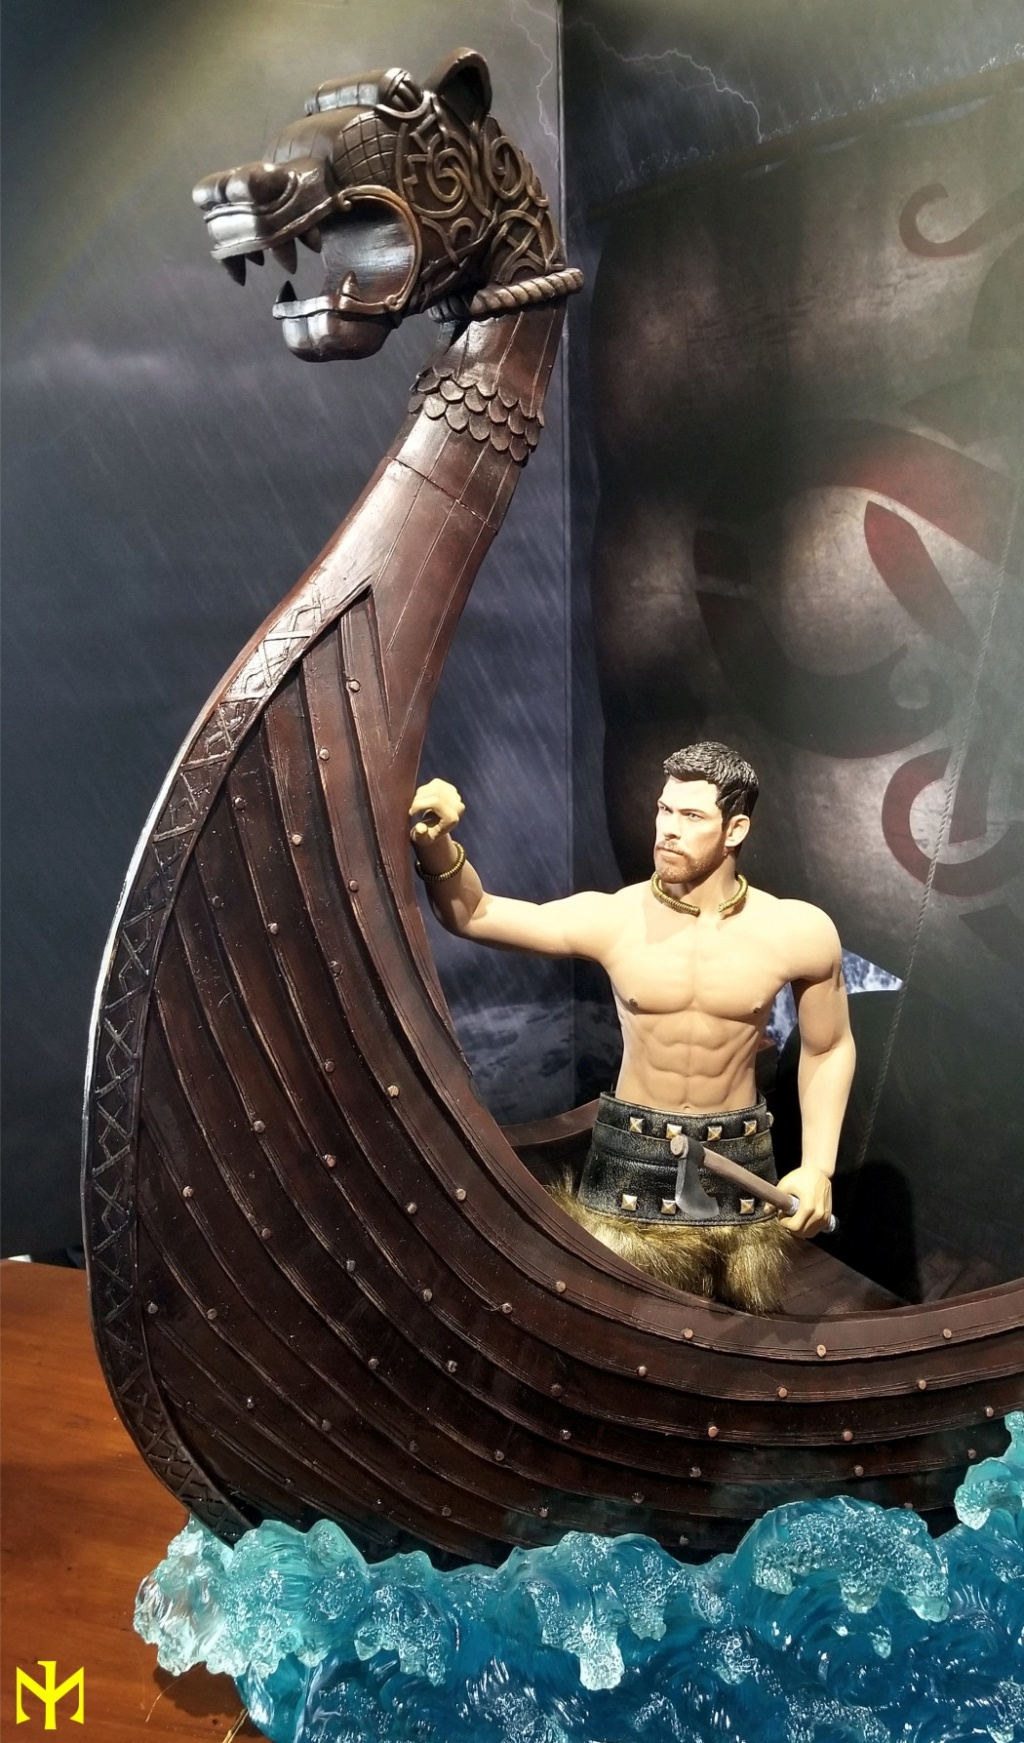 vikings - Vikings Vanquisher Viking Ship Diorama Coomodel Review Viking39